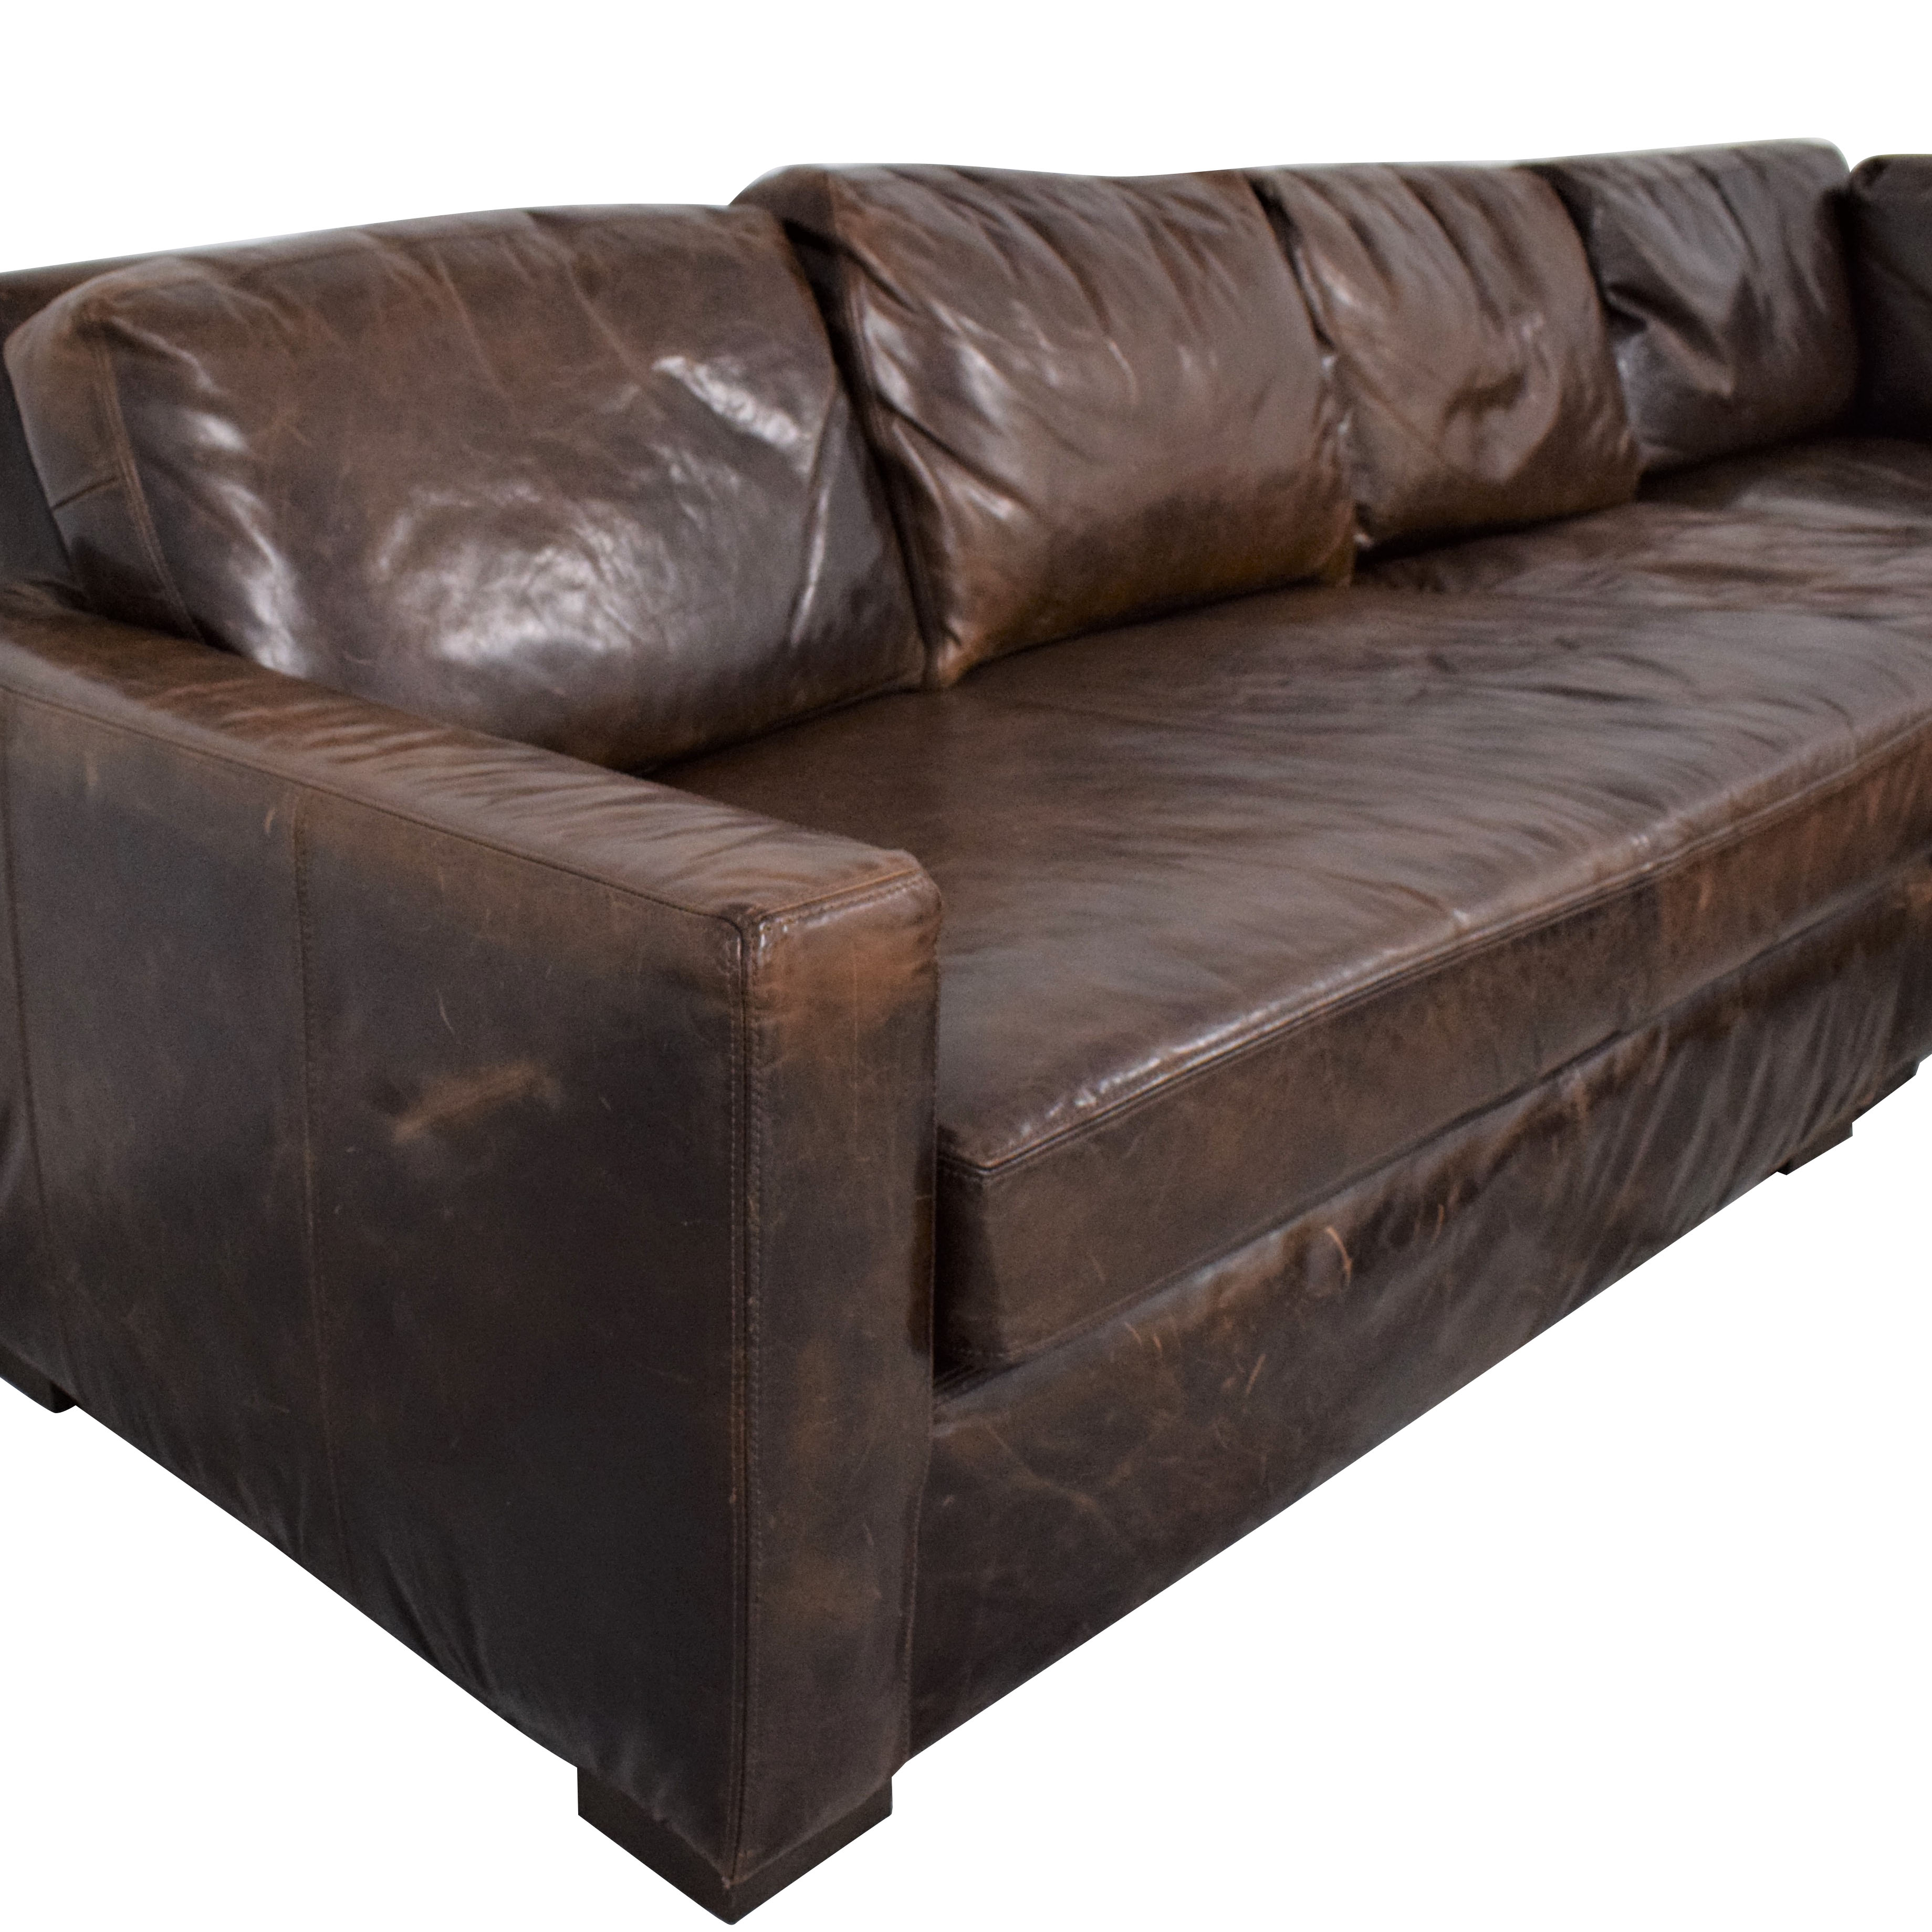 Restoration Hardware Restoration Hardware Petite Maxwell Sectional for sale